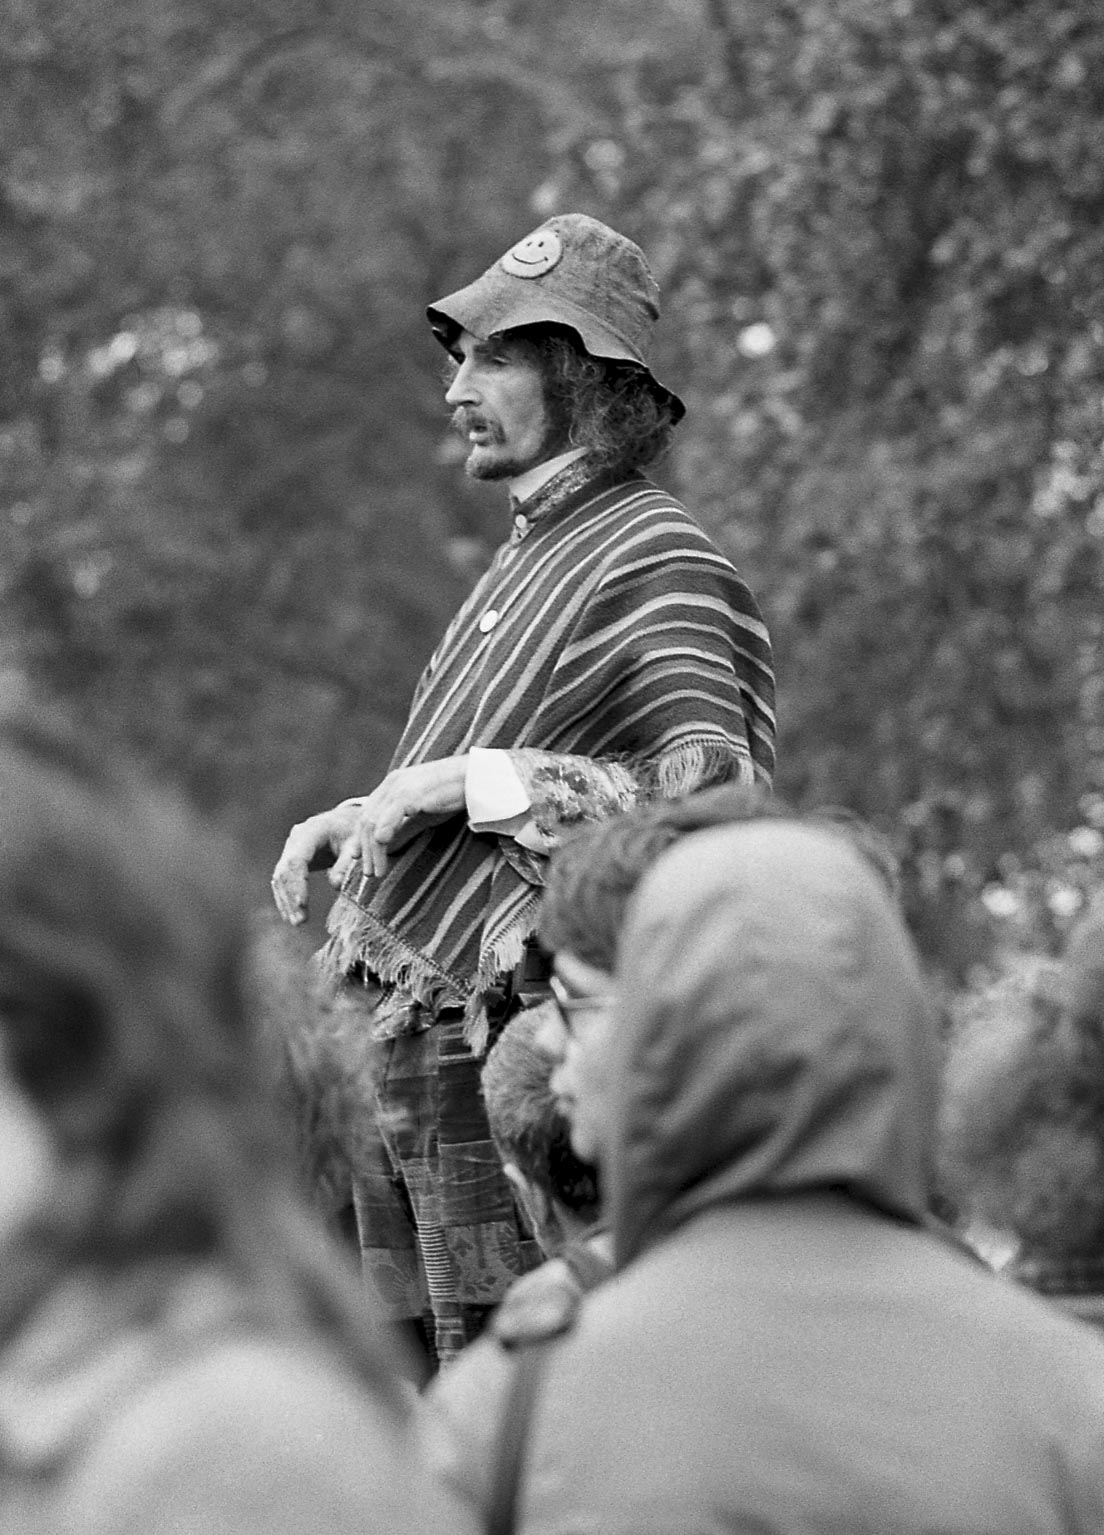 London Speakers' Corner 1971 © Iris Editha Schacht